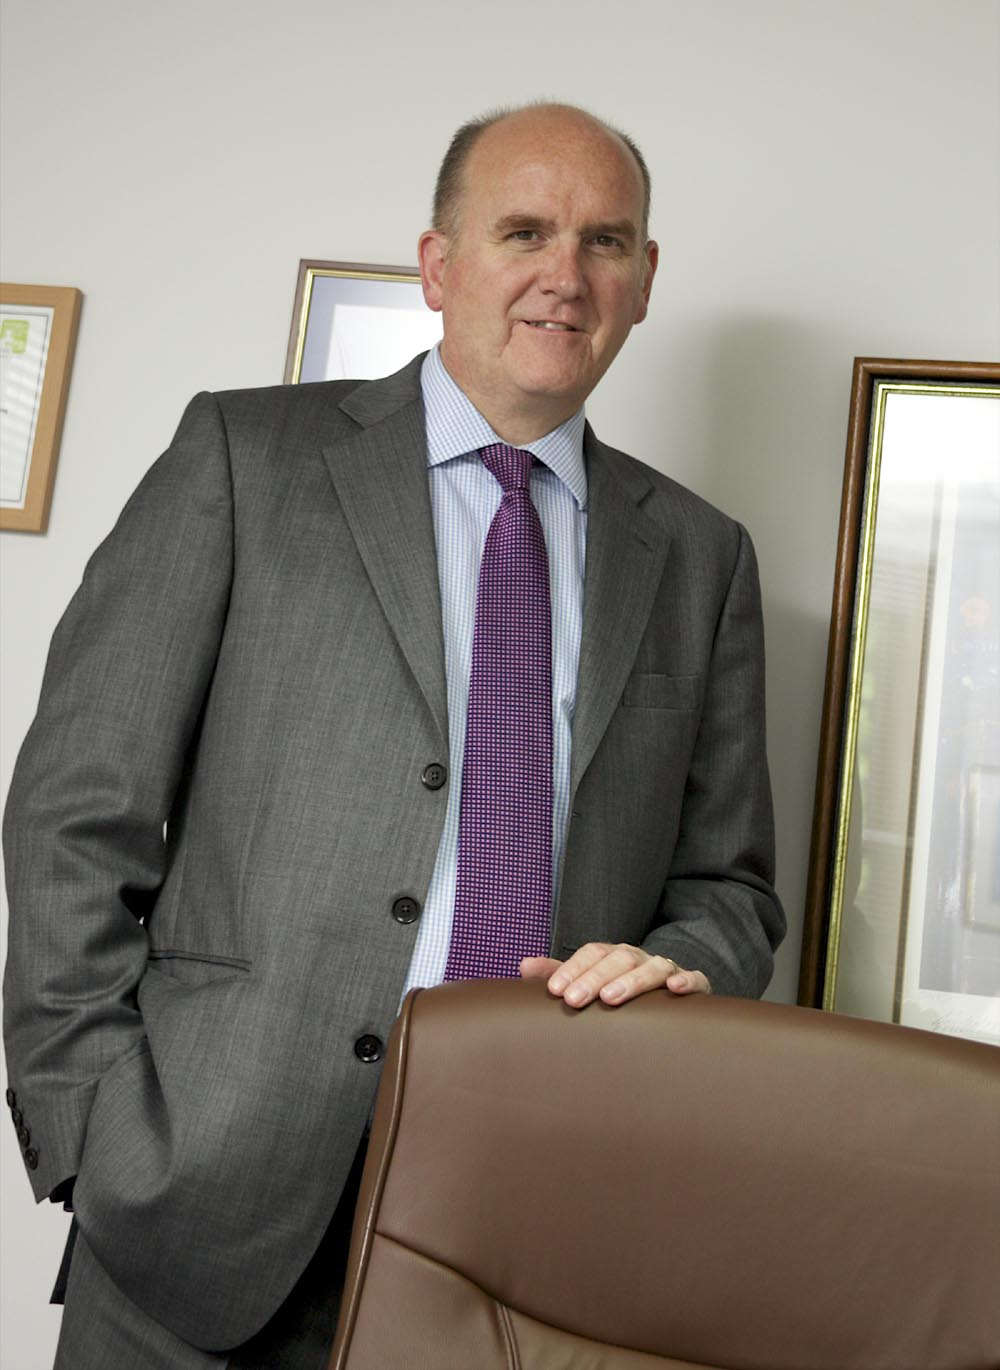 Nigel Smith - Litigation Partner